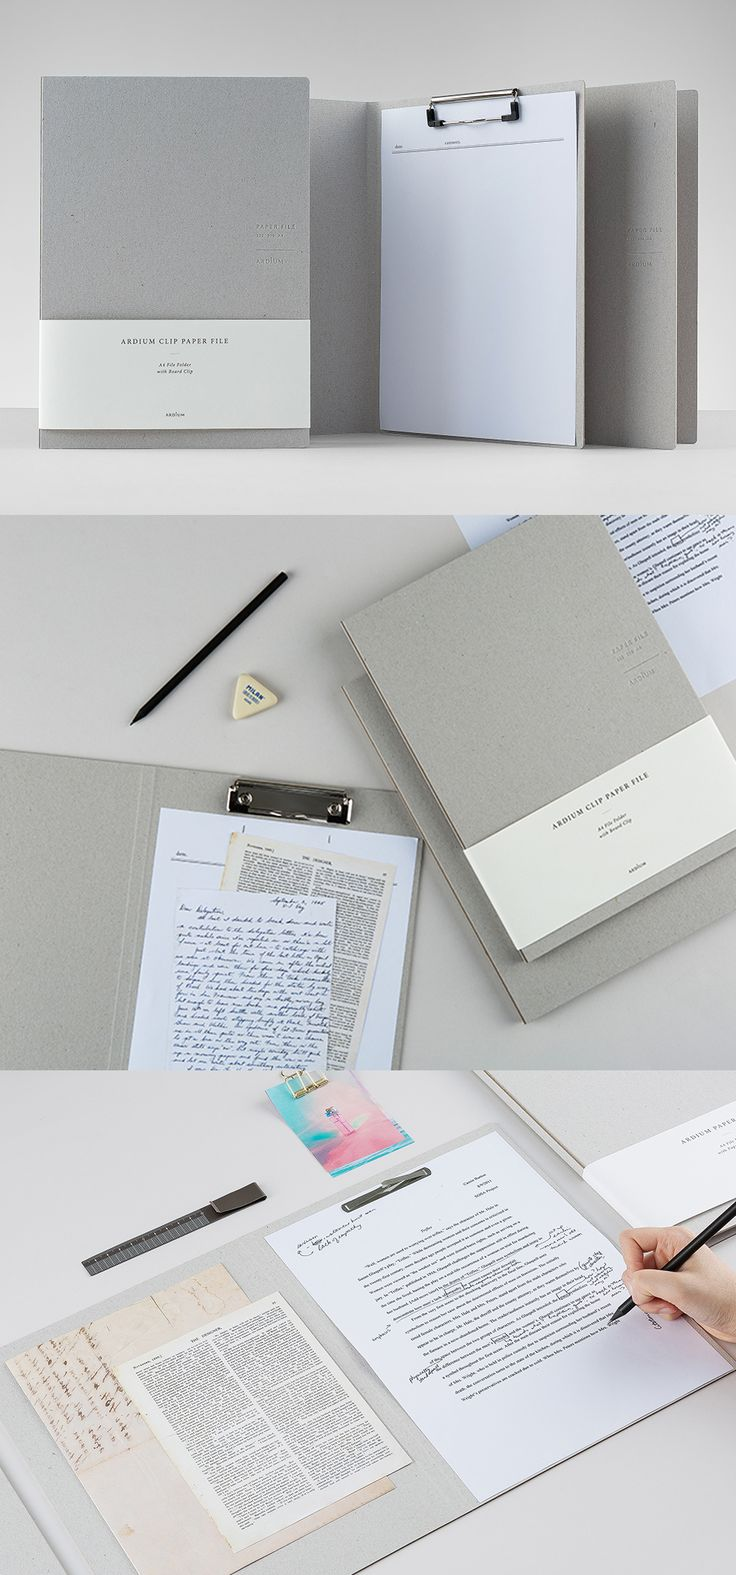 Always keep your documents safe, secure, and looking classy with this professional Ardium Hardcover File Folder!